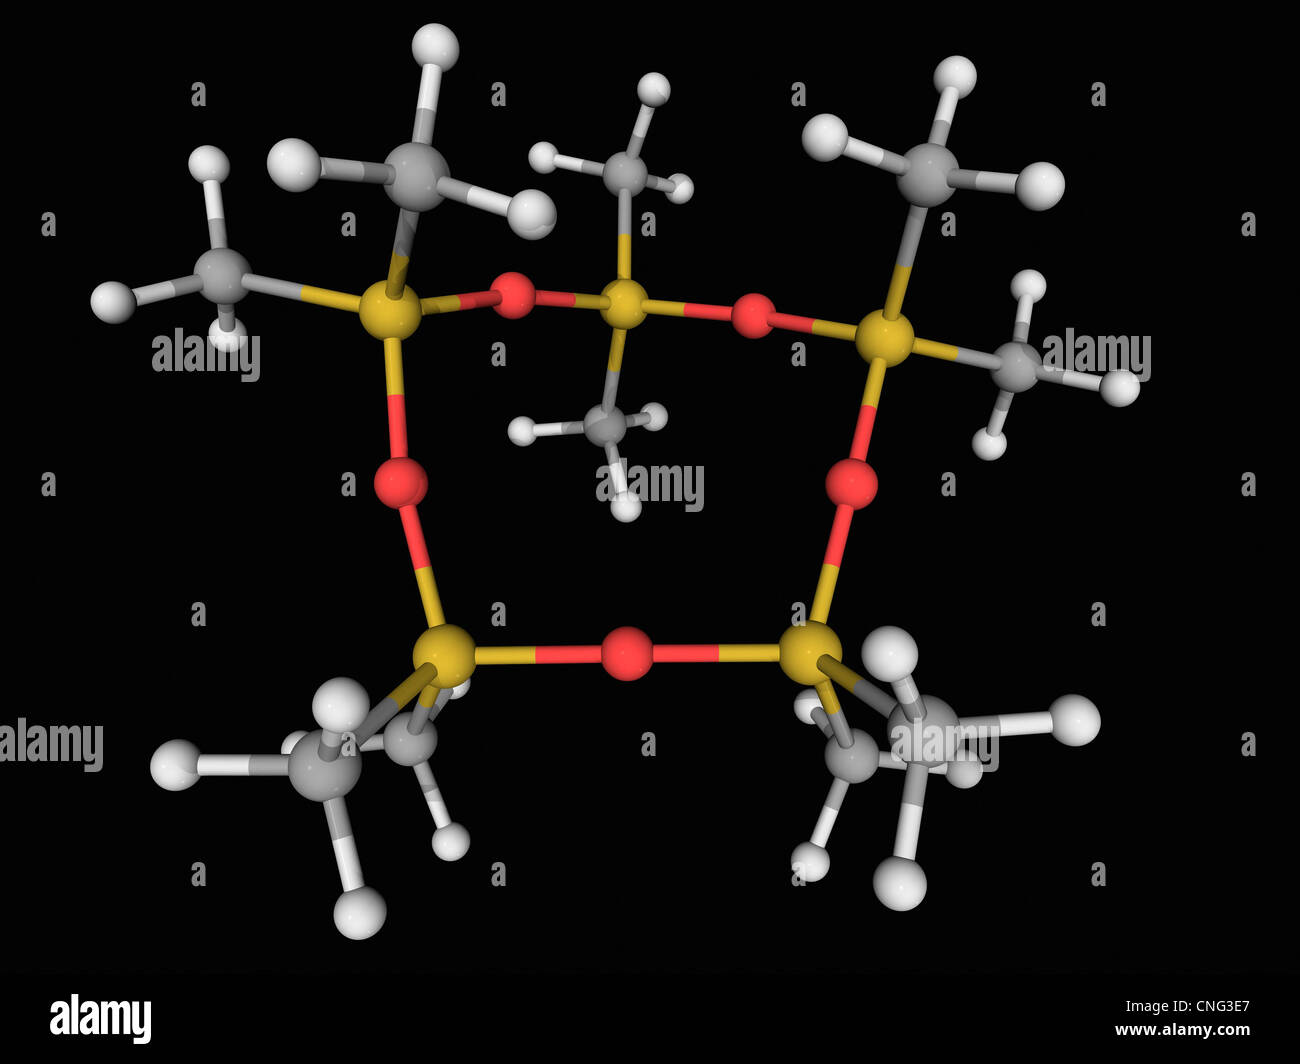 Decamethylcyclopentasiloxane molecule - Stock Image